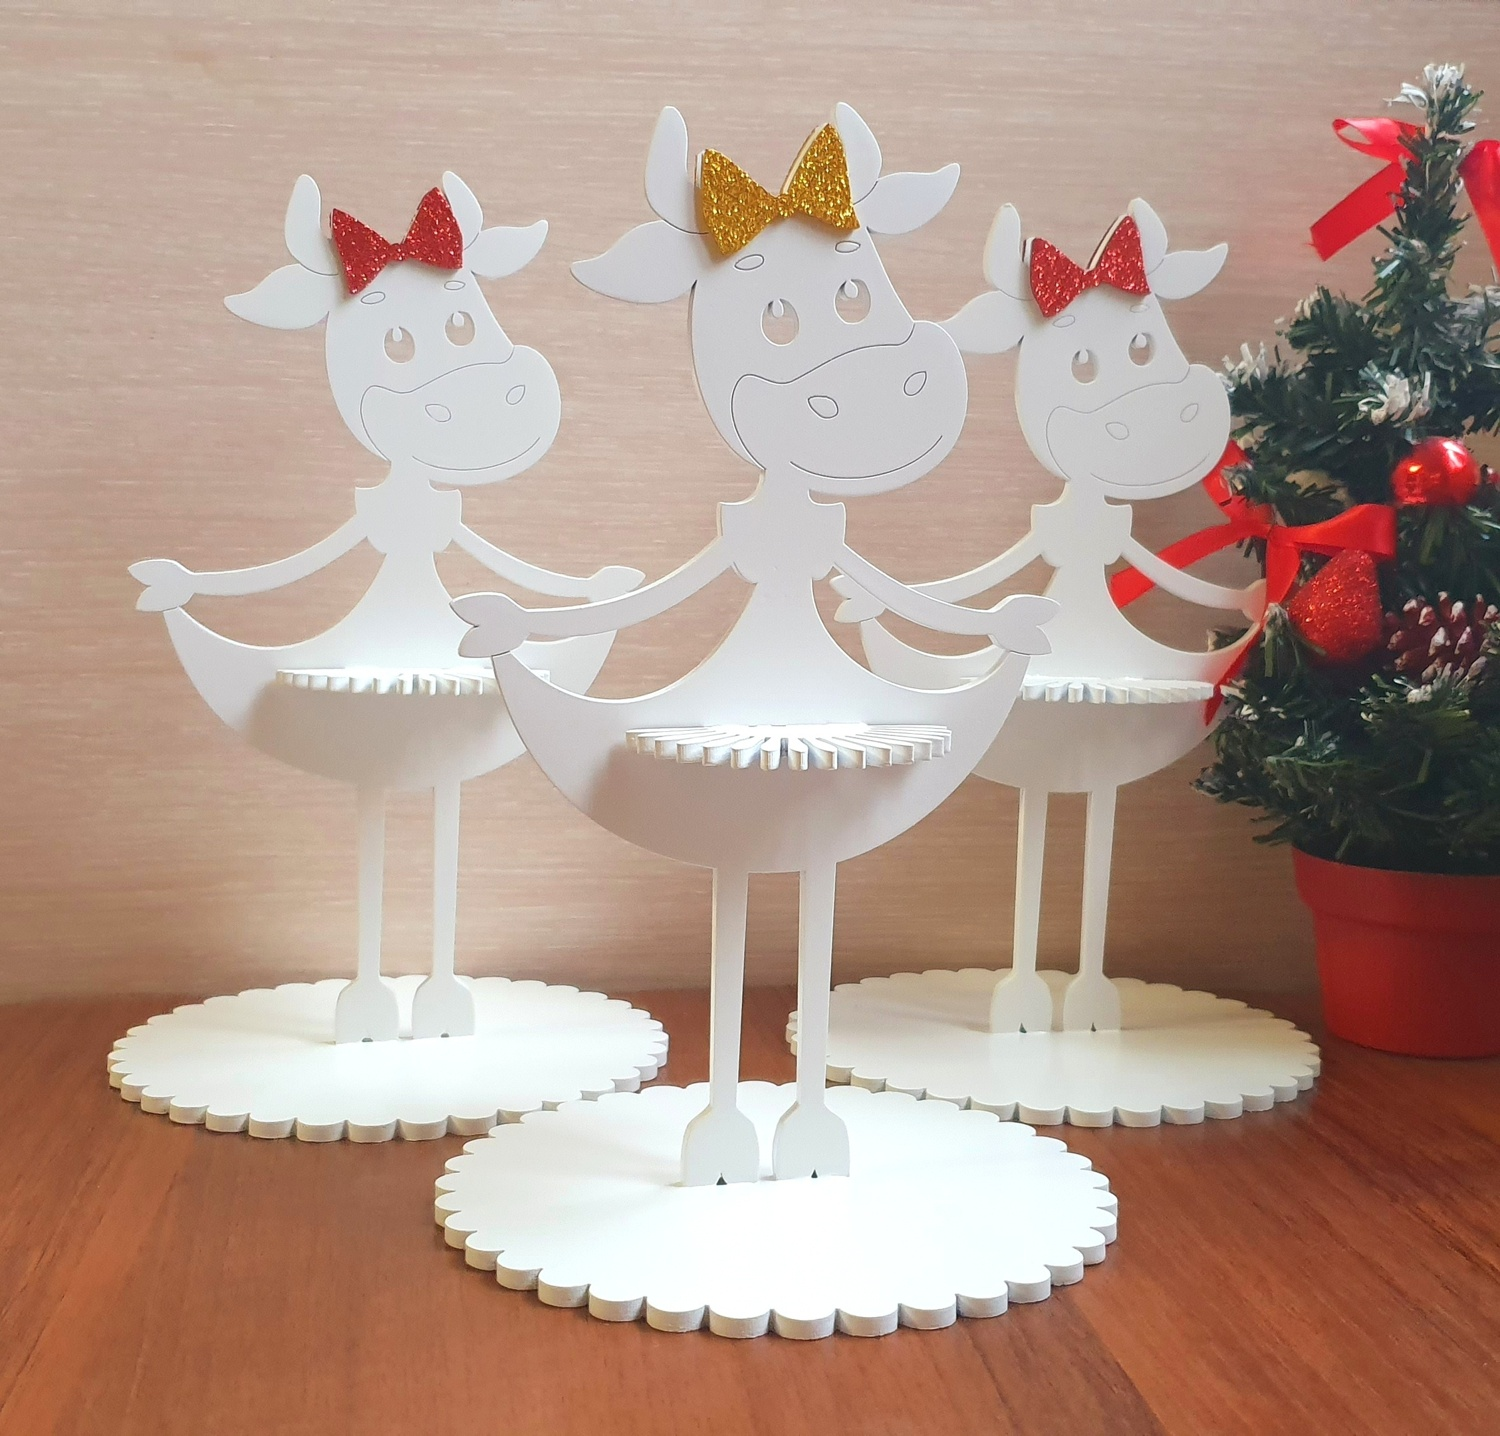 Laser Cut Christmas Napkin Holder Christmas Table Decorations Free Vector